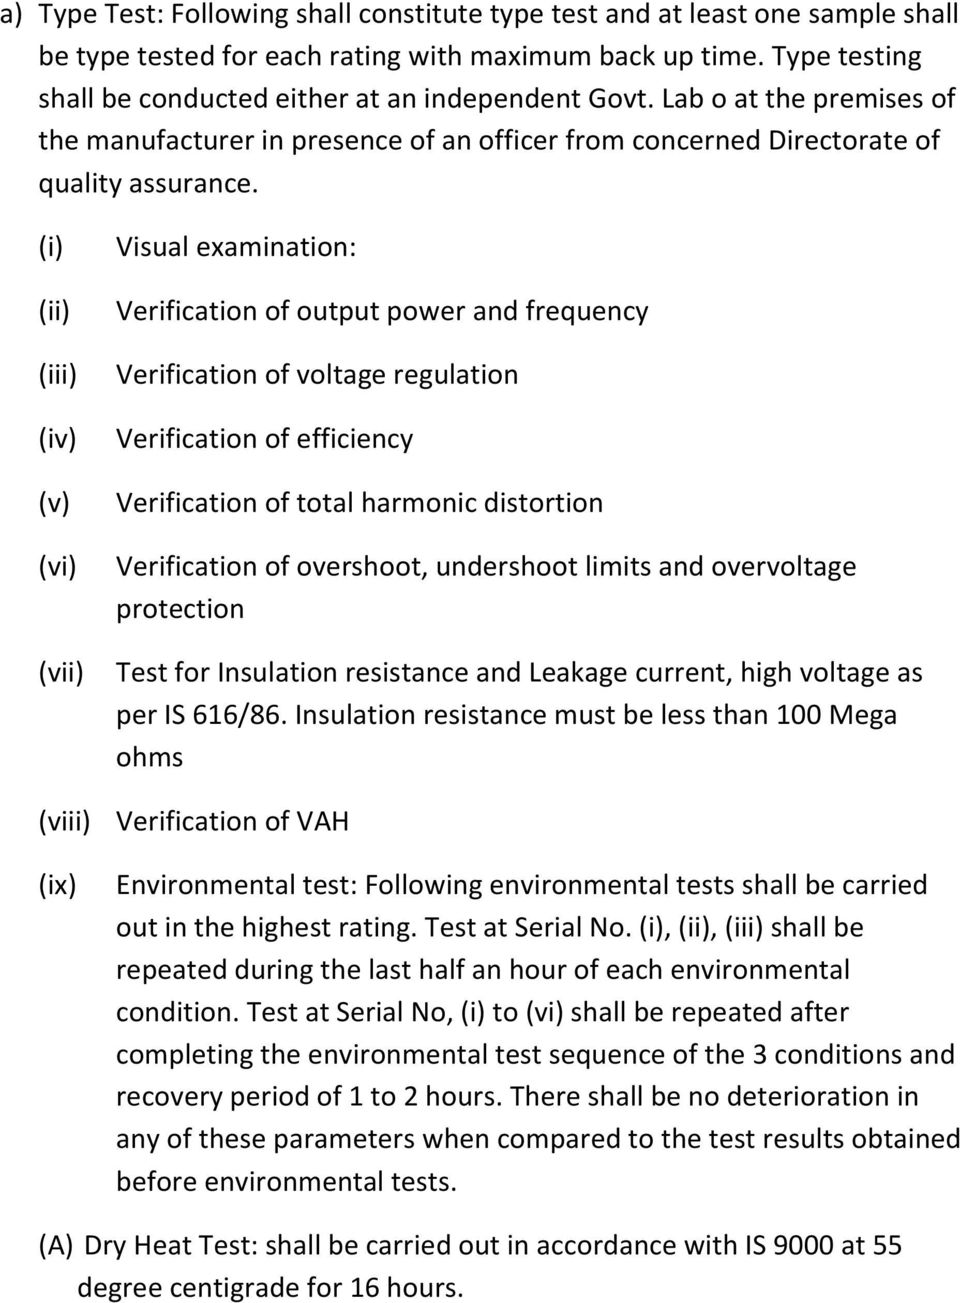 (i) (ii) (iii) (iv) (v) (vi) (vii) Visual examination: Verification of output power and frequency Verification of voltage regulation Verification of efficiency Verification of total harmonic